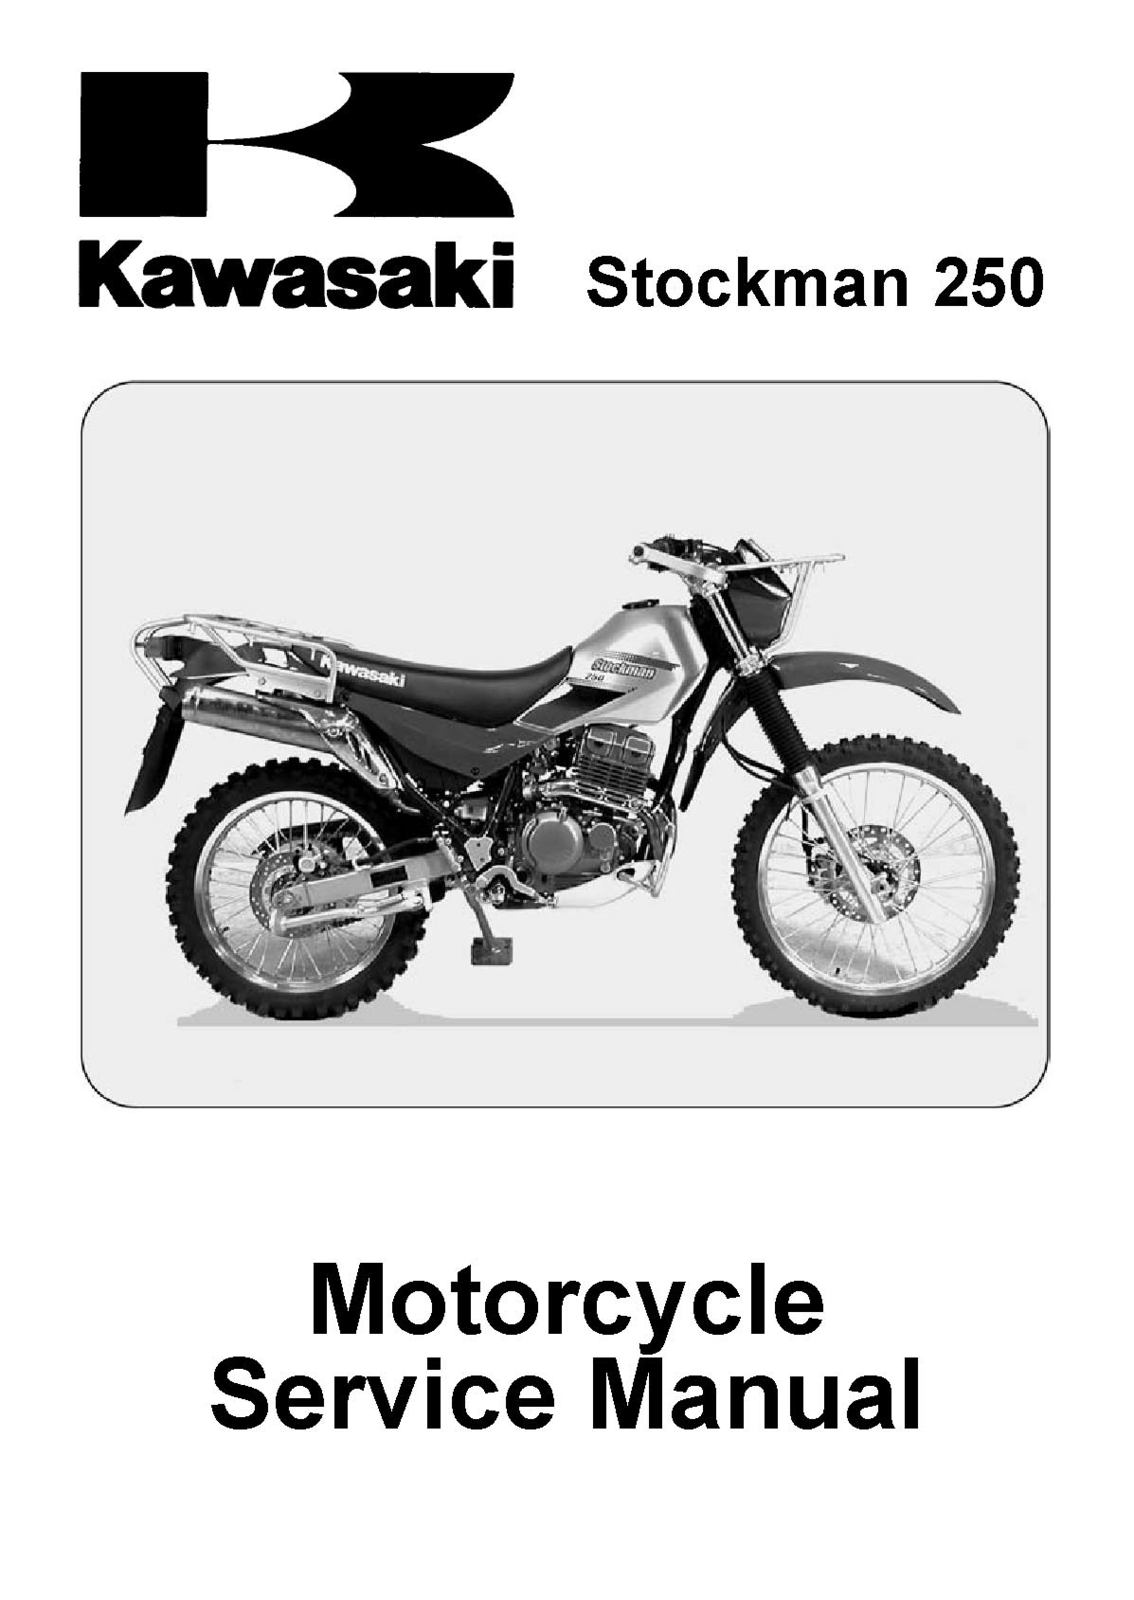 Kl250 stockman 250. Kl250 stockman 250. 2003 2004 2005 2006 2007 Kawasaki  KL250 KL 250 STOCKMAN Service Repair Manual ...